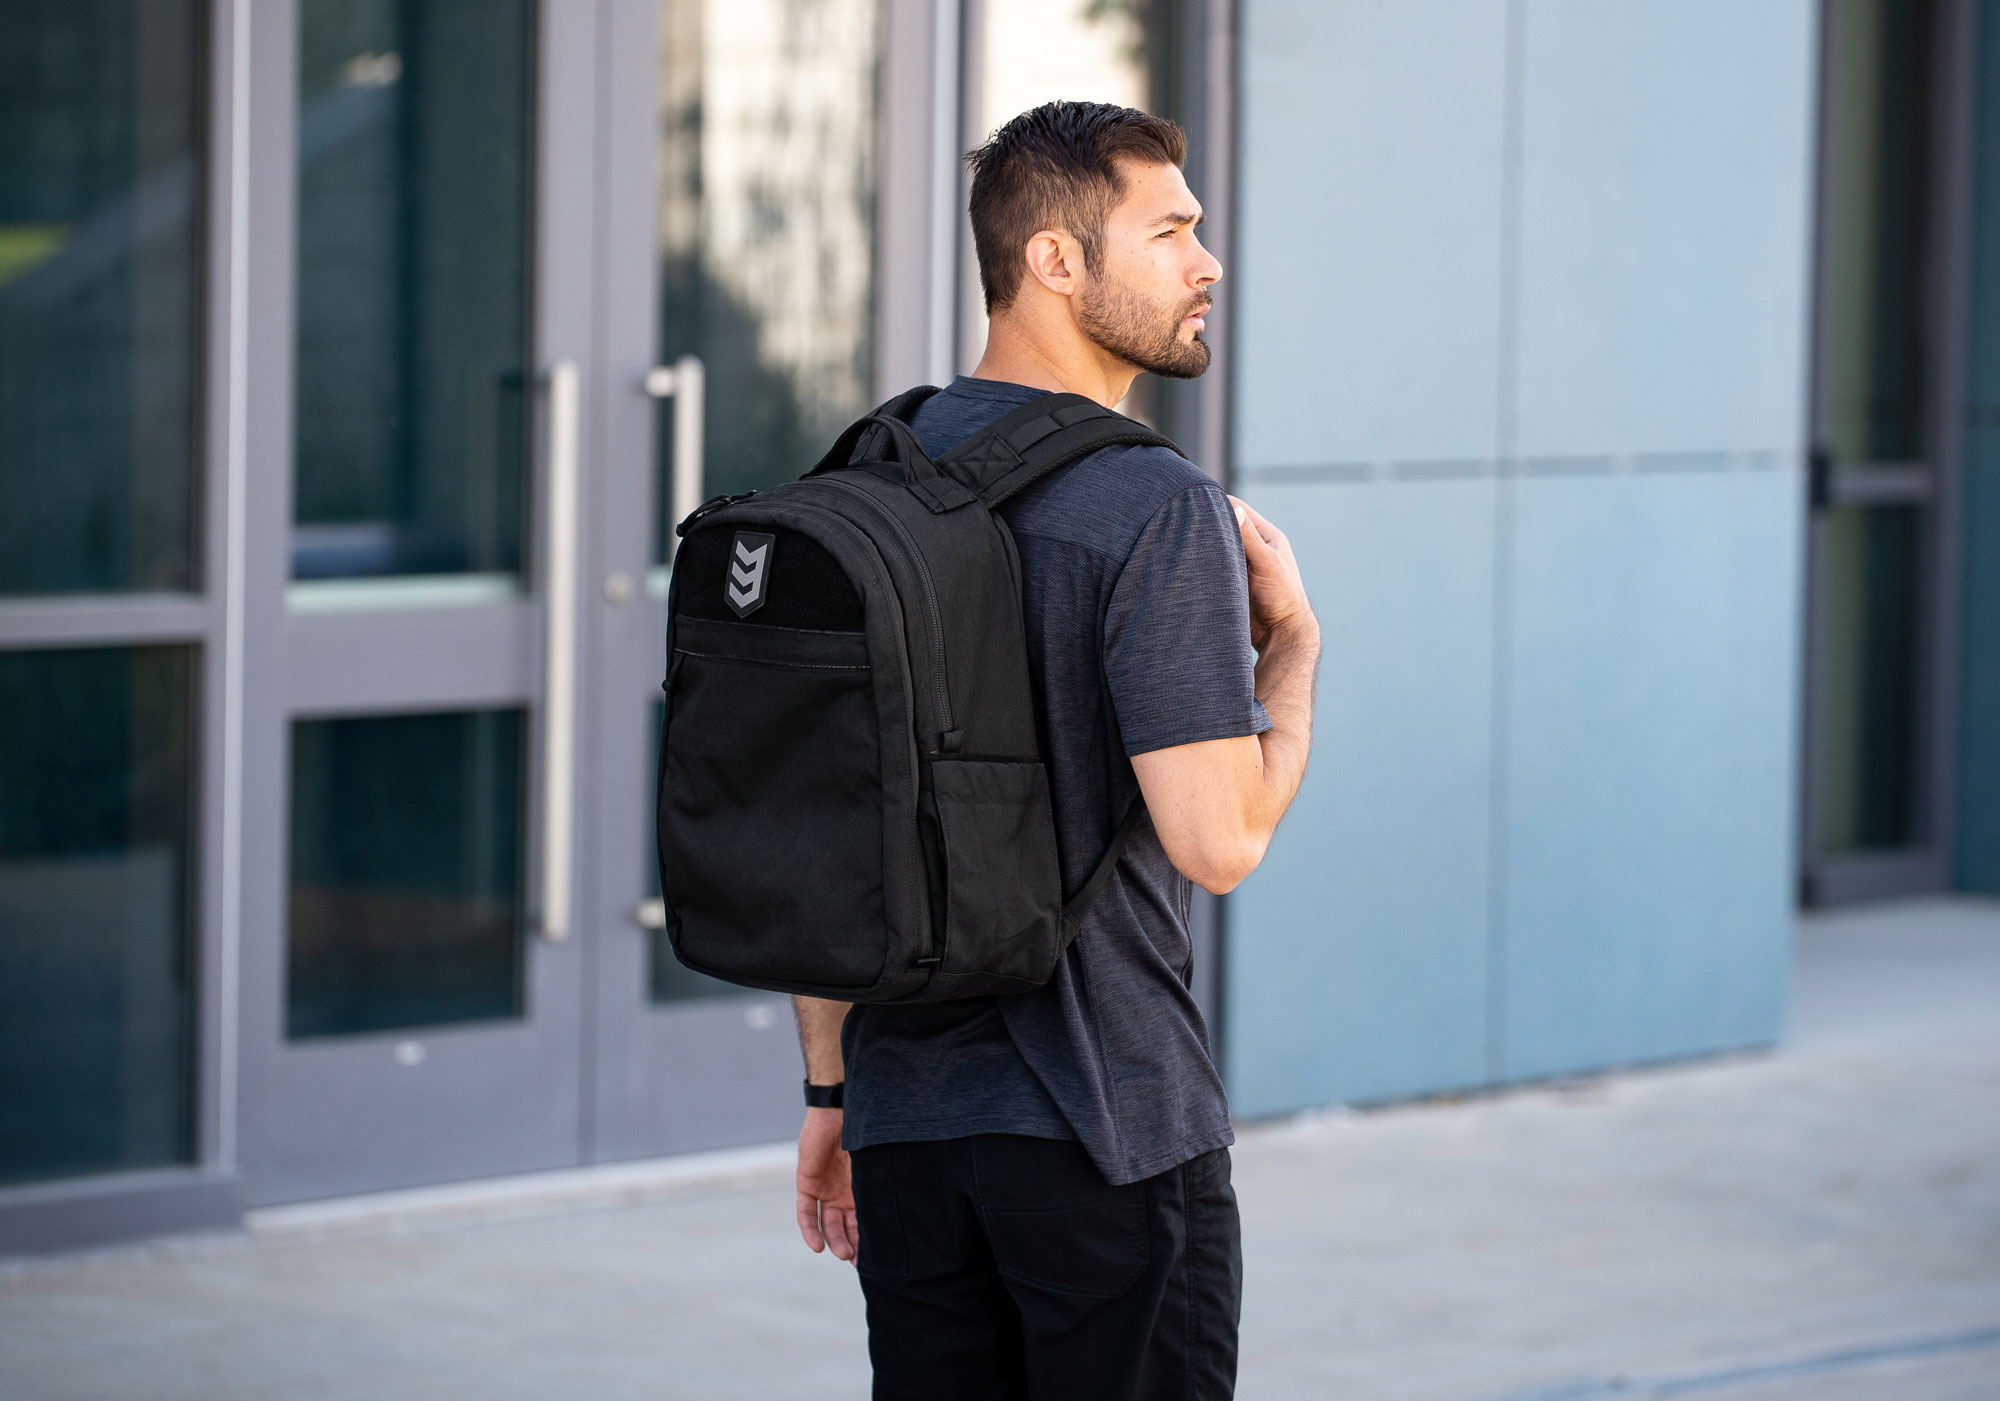 Stay Incognito with the New Gray Man Backpack from 3V Gear